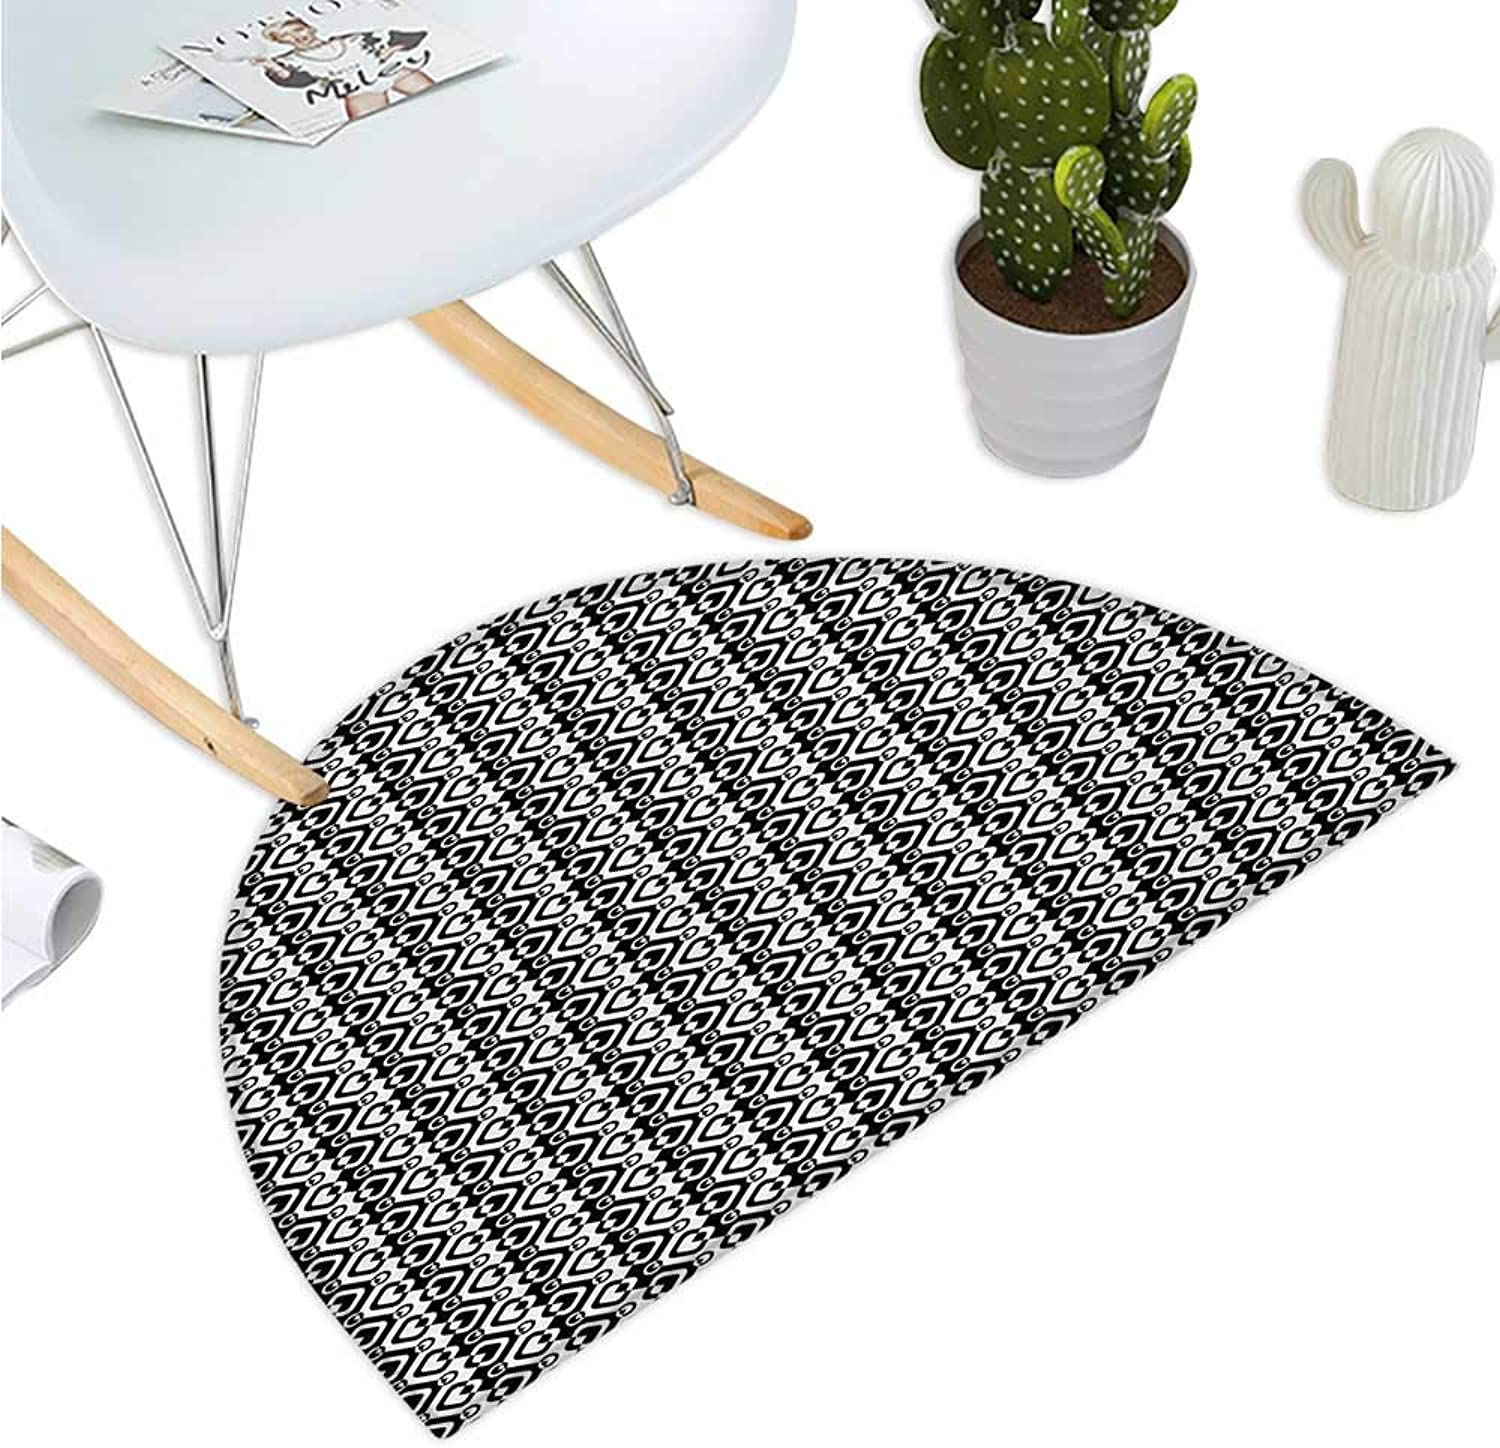 Geometric Semicircle Doormat Chevron Zigzags Rhombus and Circles Pattern Monochrome Abstract Illustration Entry Door Mat H 43.3  xD 64.9  Black and White